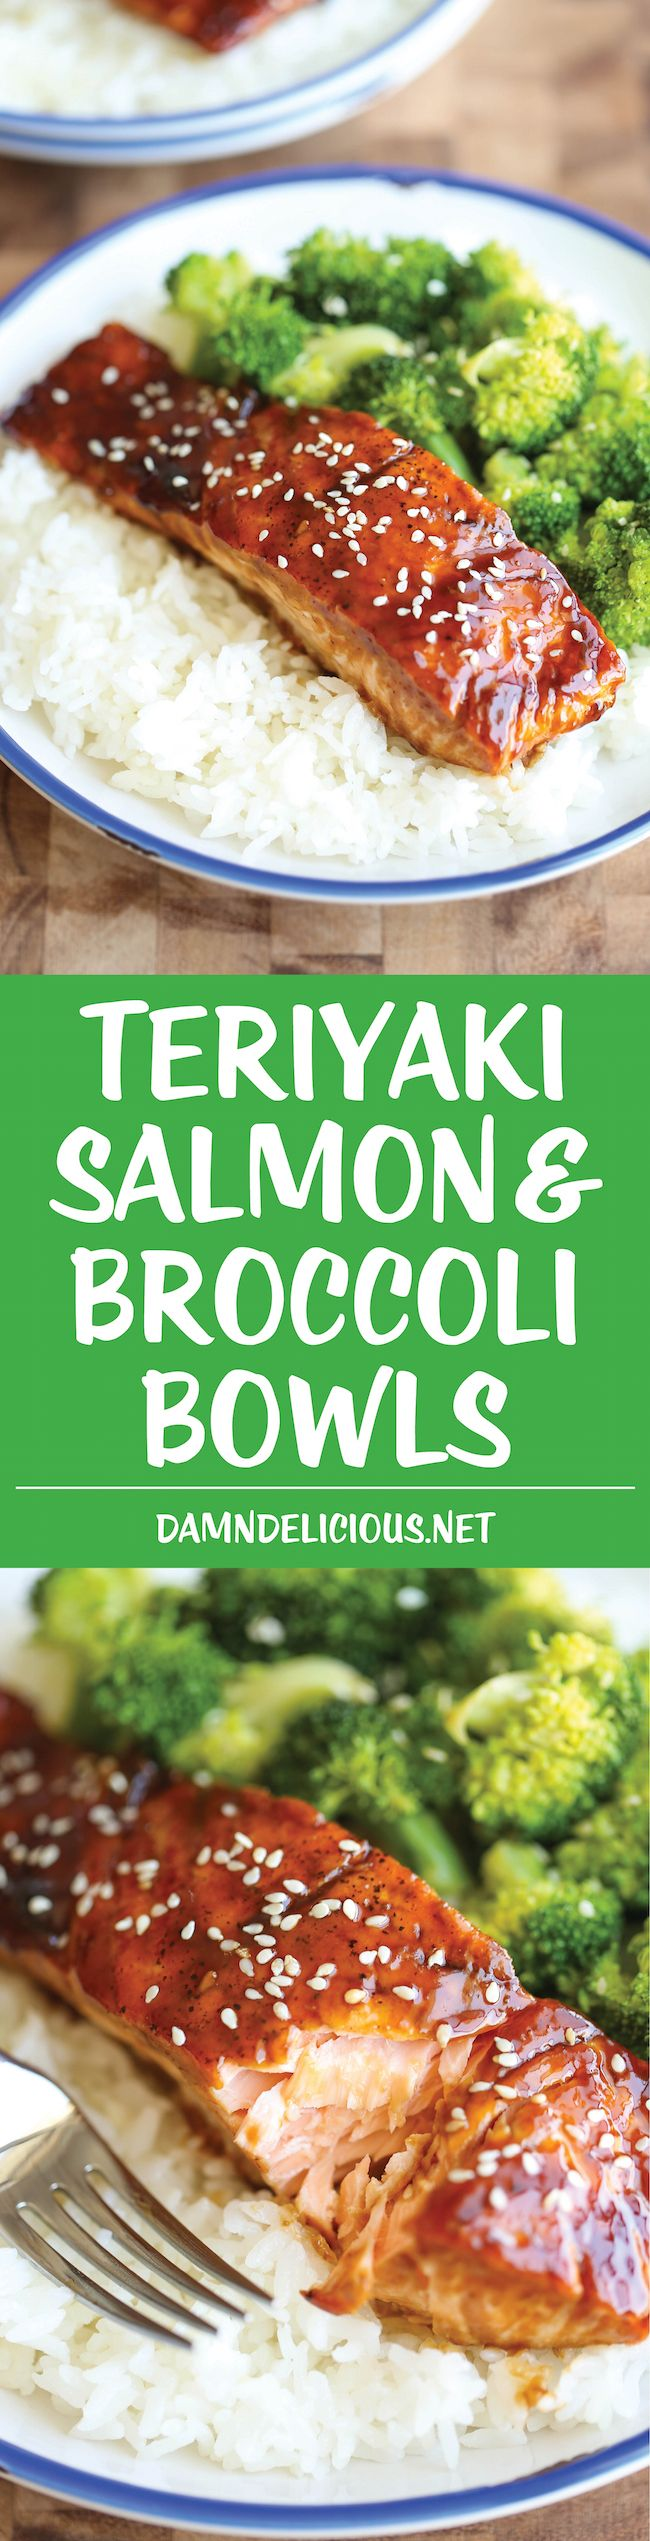 Teriyaki Salmon and Broccoli Bowls - There's no need for takeout anymore - you can easily make homemade teriyaki bowls with rice and veggies in minutes! - Made this on 6/17/2015 - I substituted spiralized zoodles for the rice, because otherwise this dish is 500 calories. I thought it was rather good. My first time making salmon on my own and baking it was quite easy. The homemade teriyaki sauce was tasty.